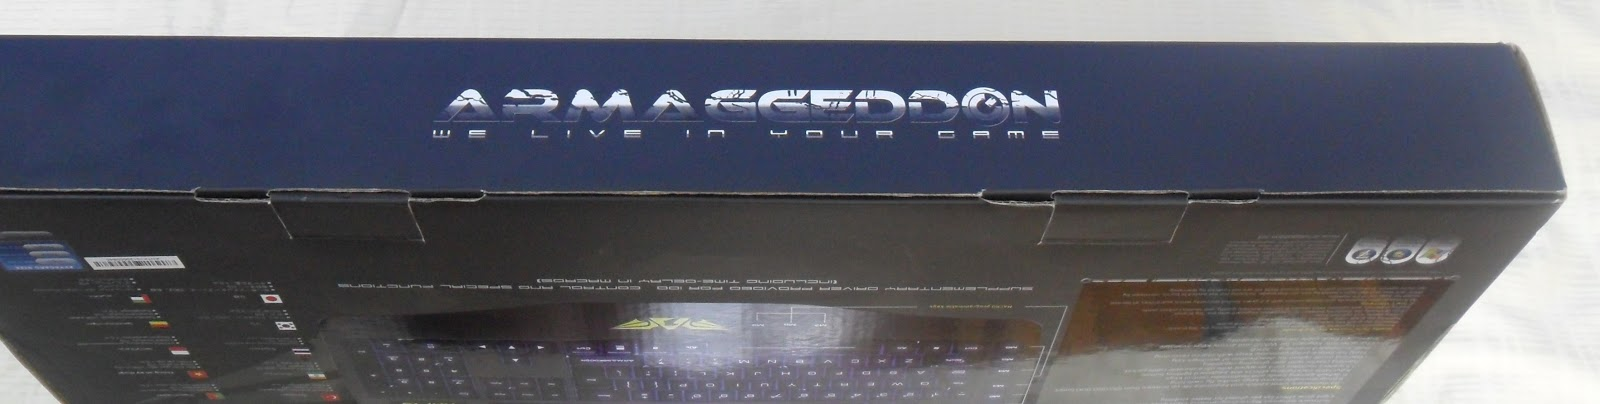 Unboxing & Review: Armaggeddon Taranis Kai-13 Gaming Keyboard 53